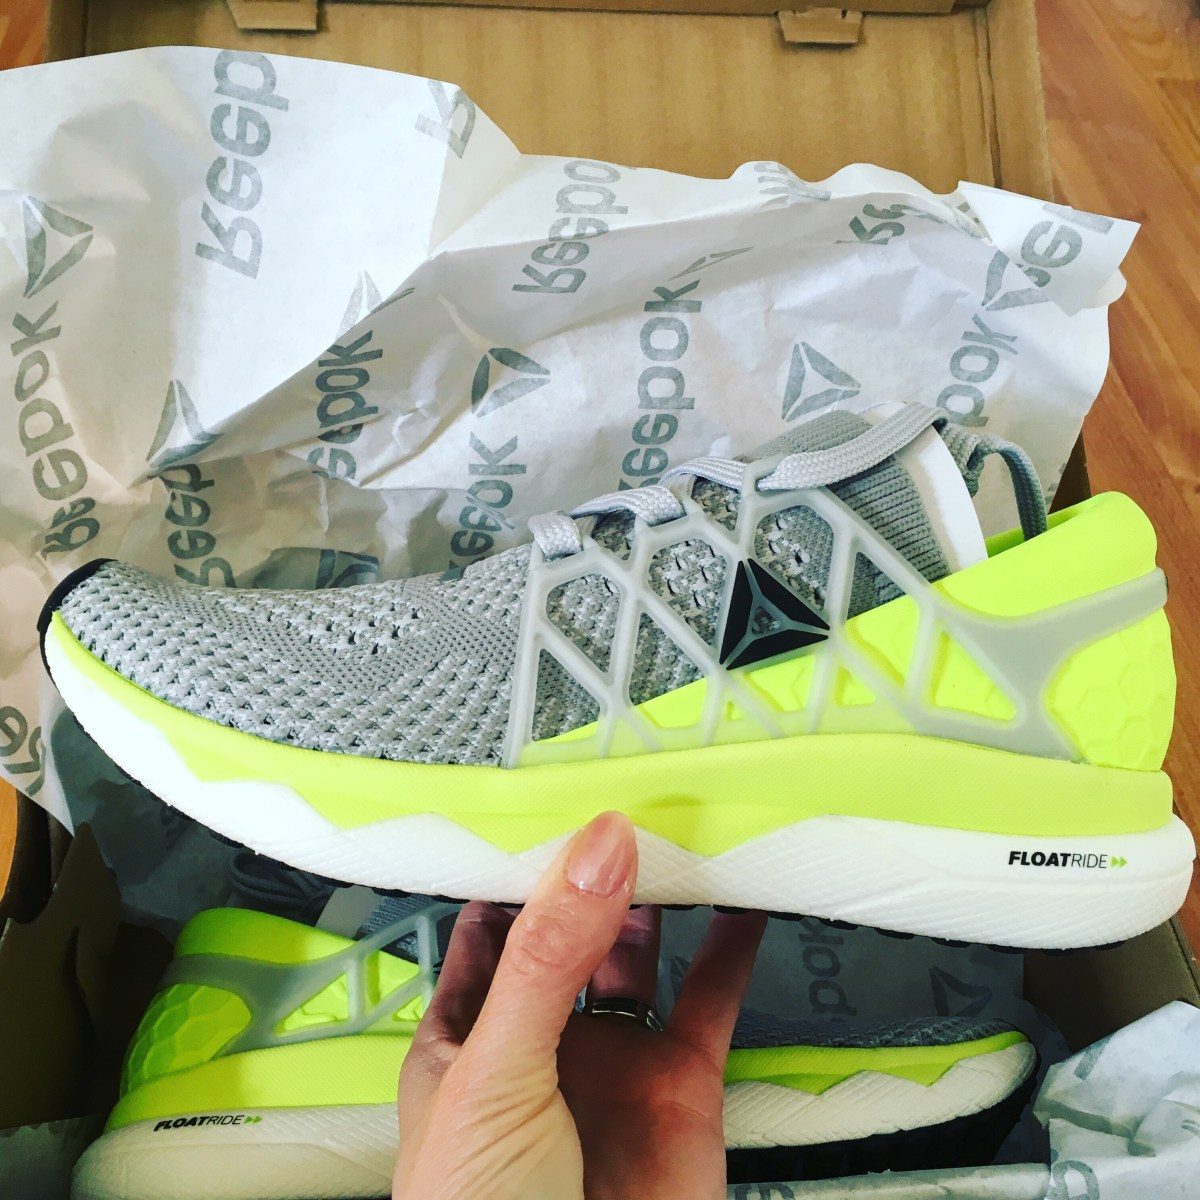 Reebok Floatride Run Shoe Review #sponsored